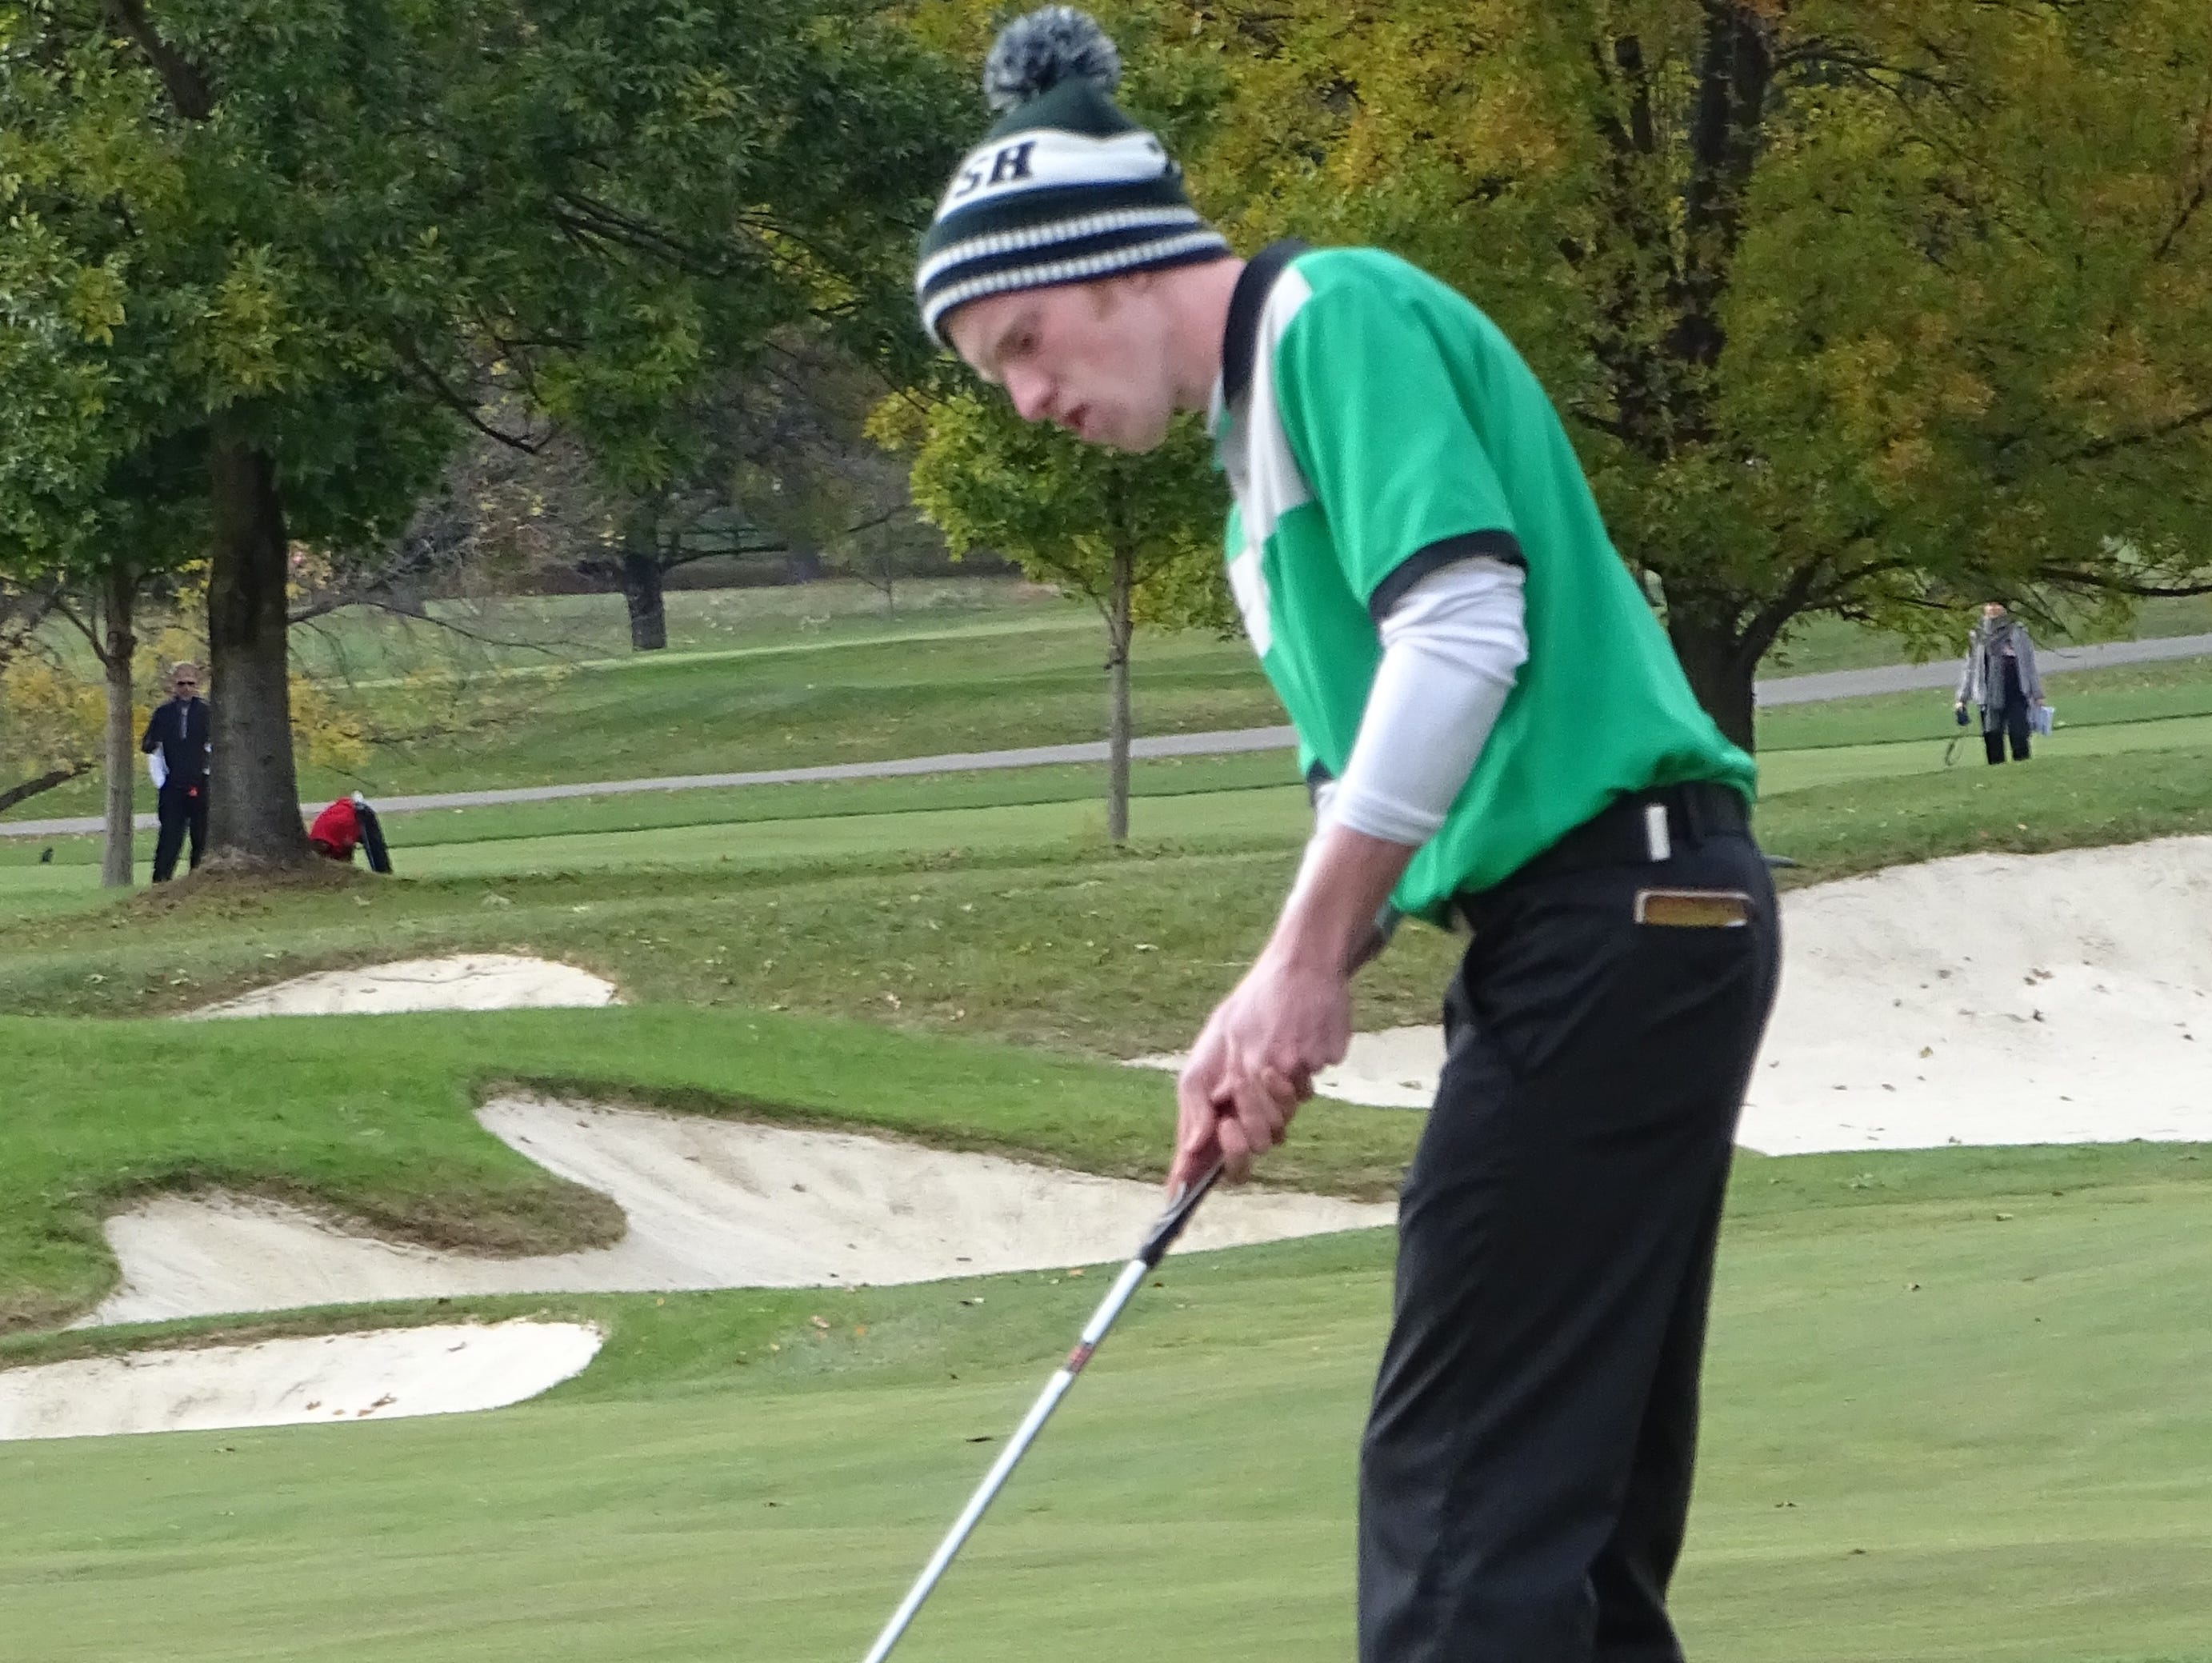 Fisher Catholic senior Aaron Wood putts on the 18th green at Ohio State's Scarlet Course. The Irish won the Division III state championship.